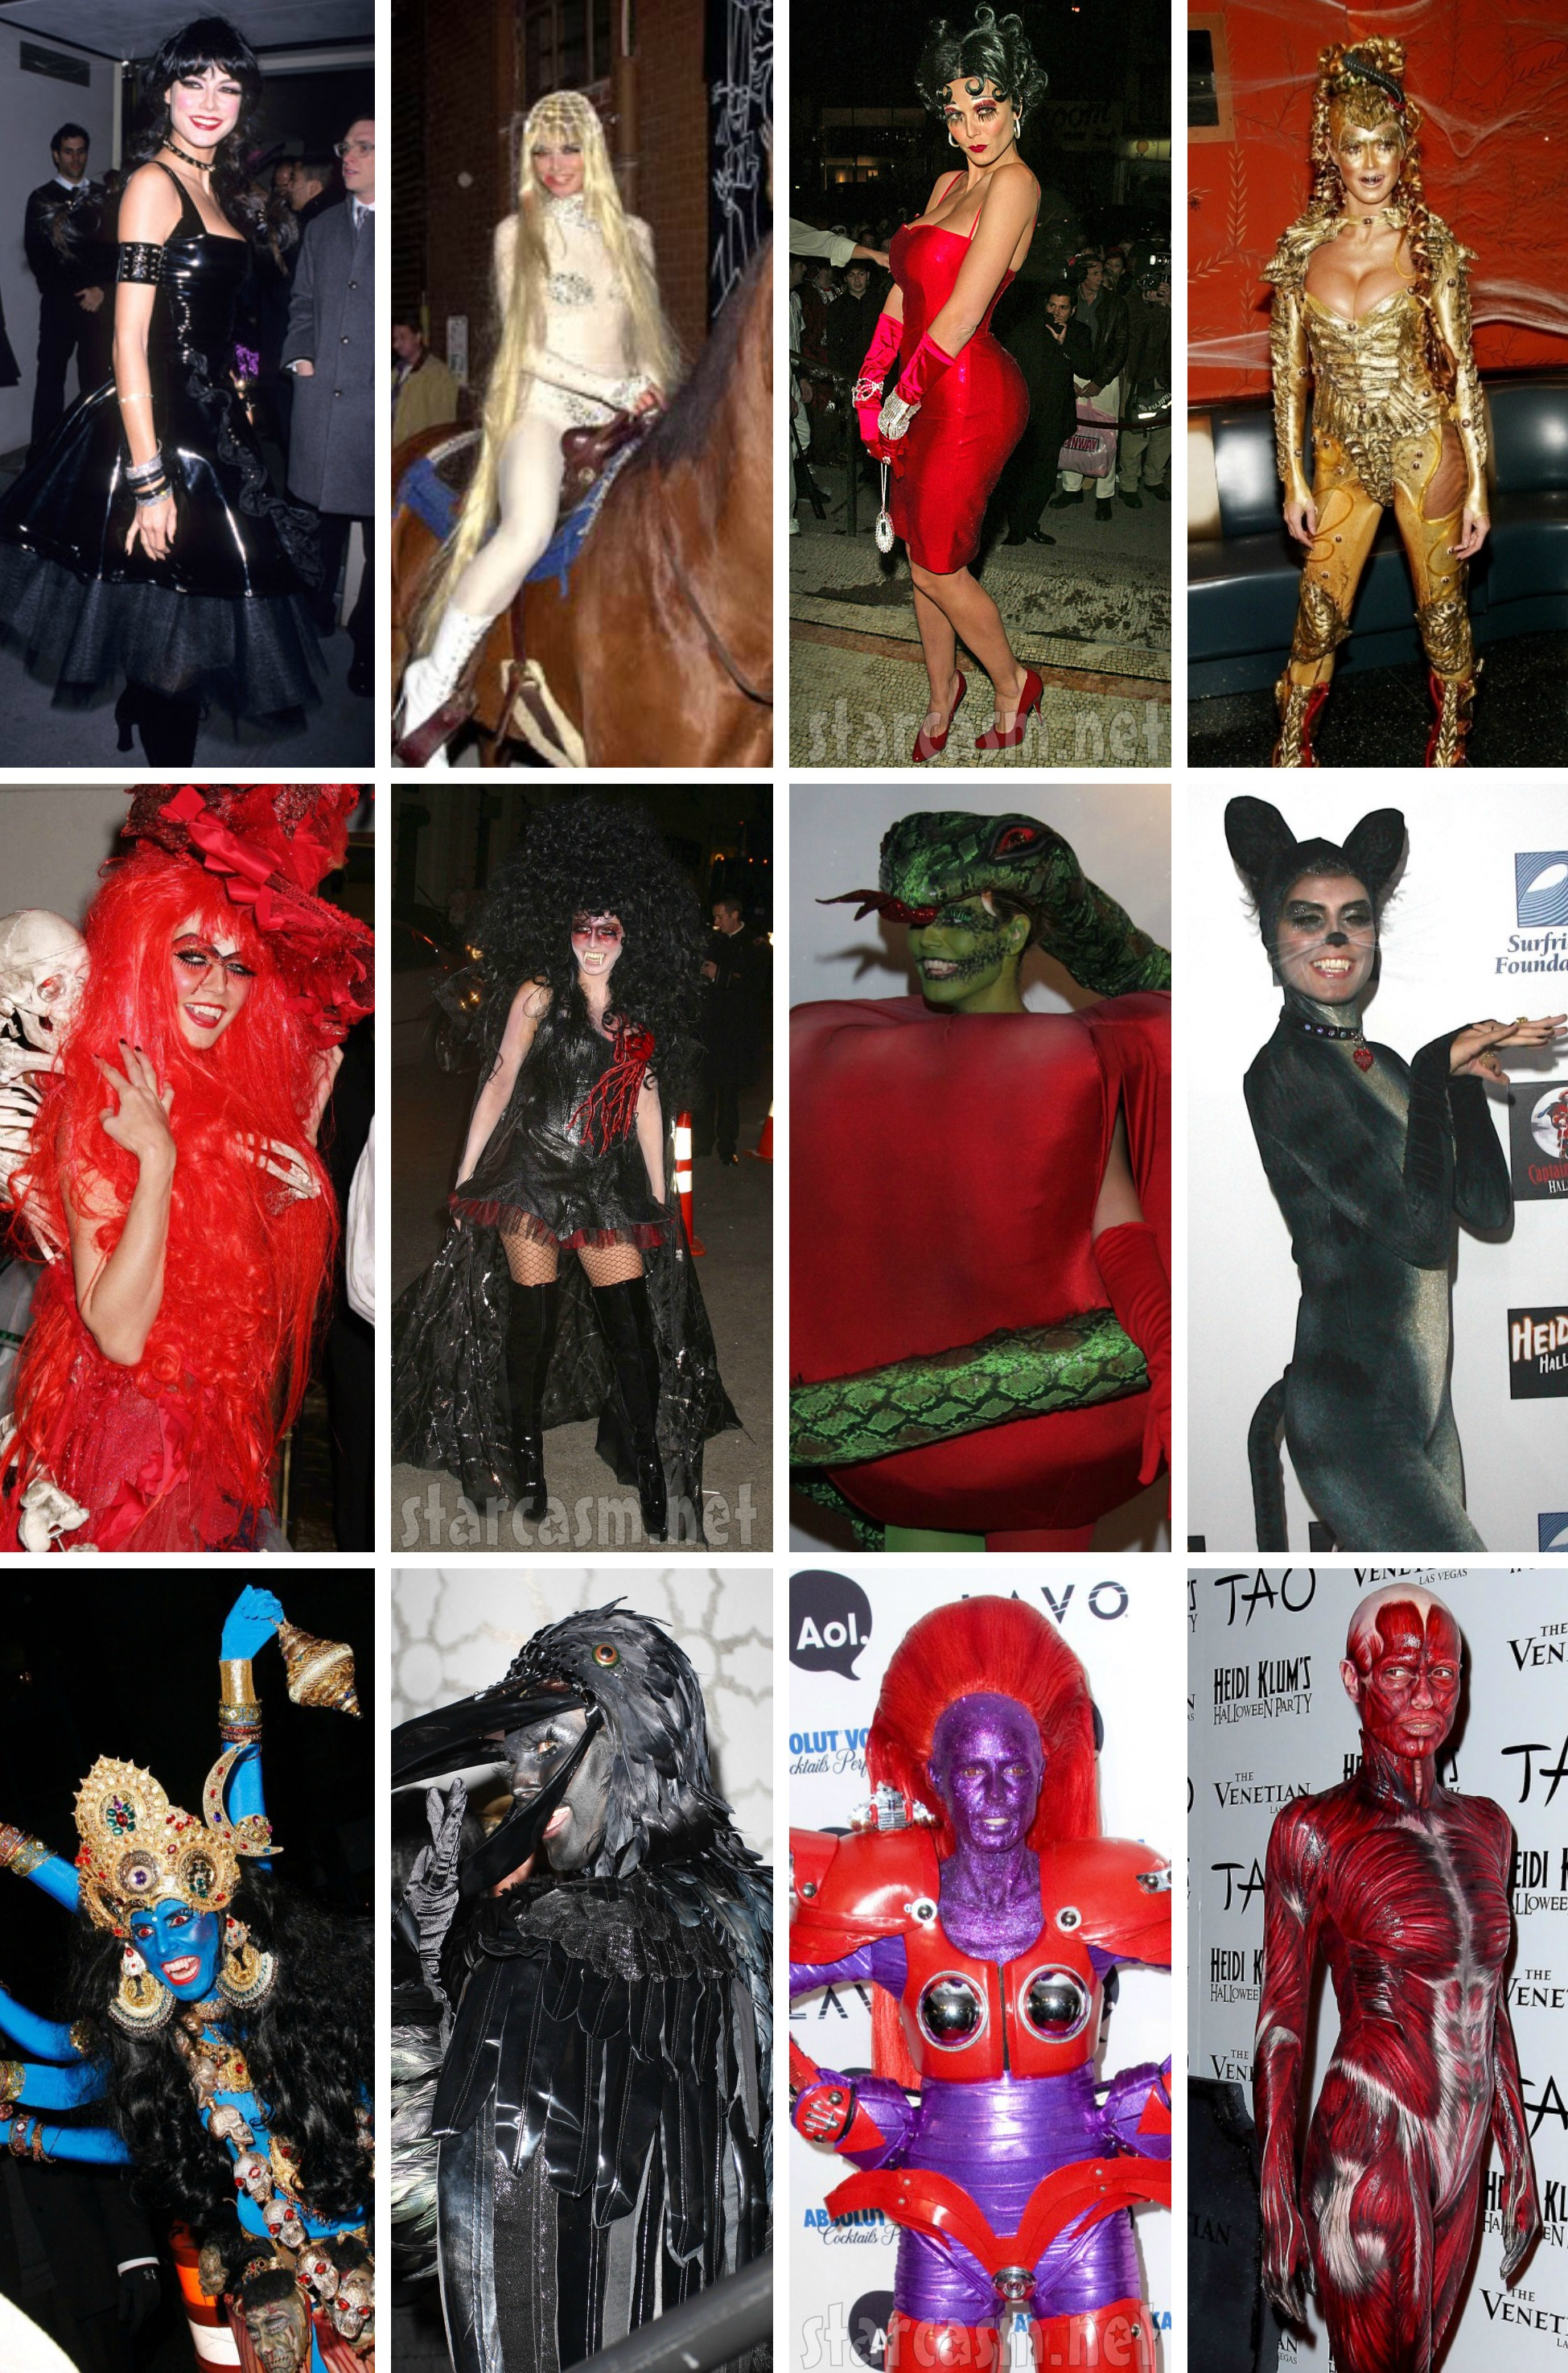 PHOTOS Heidi Klum's Halloween costumes from 2000-